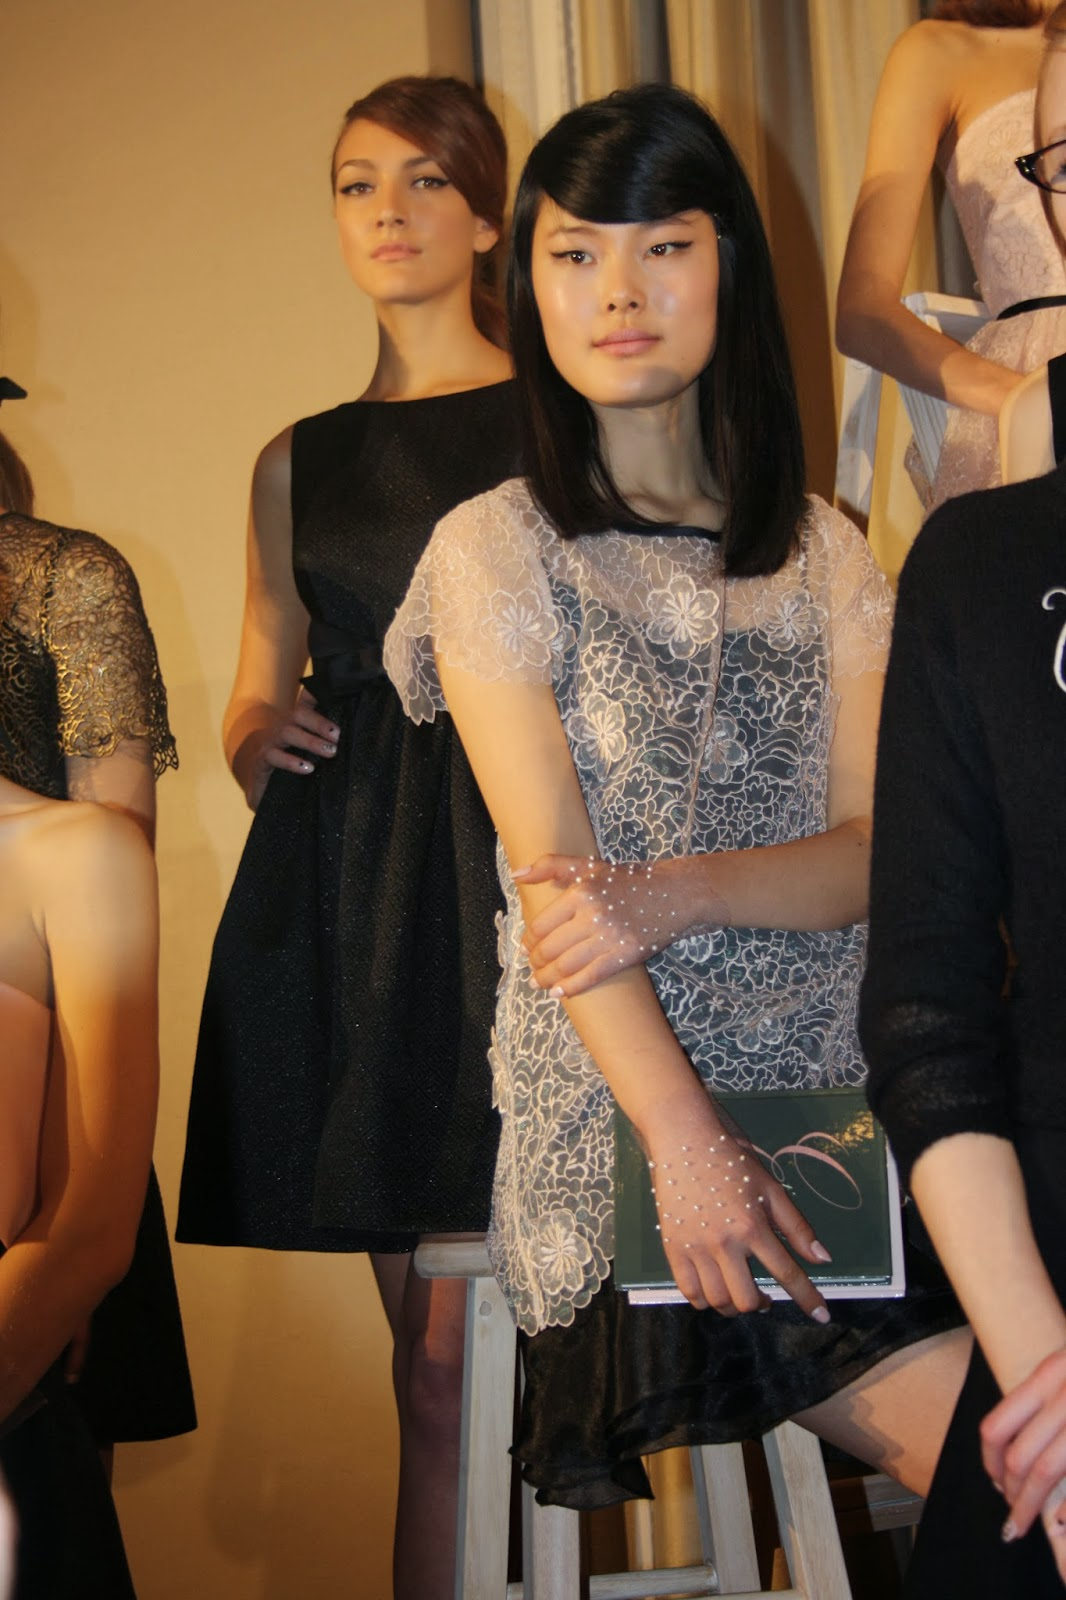 Inspection Report: Erin Fetherston Fall/Winter 2014 Presentation